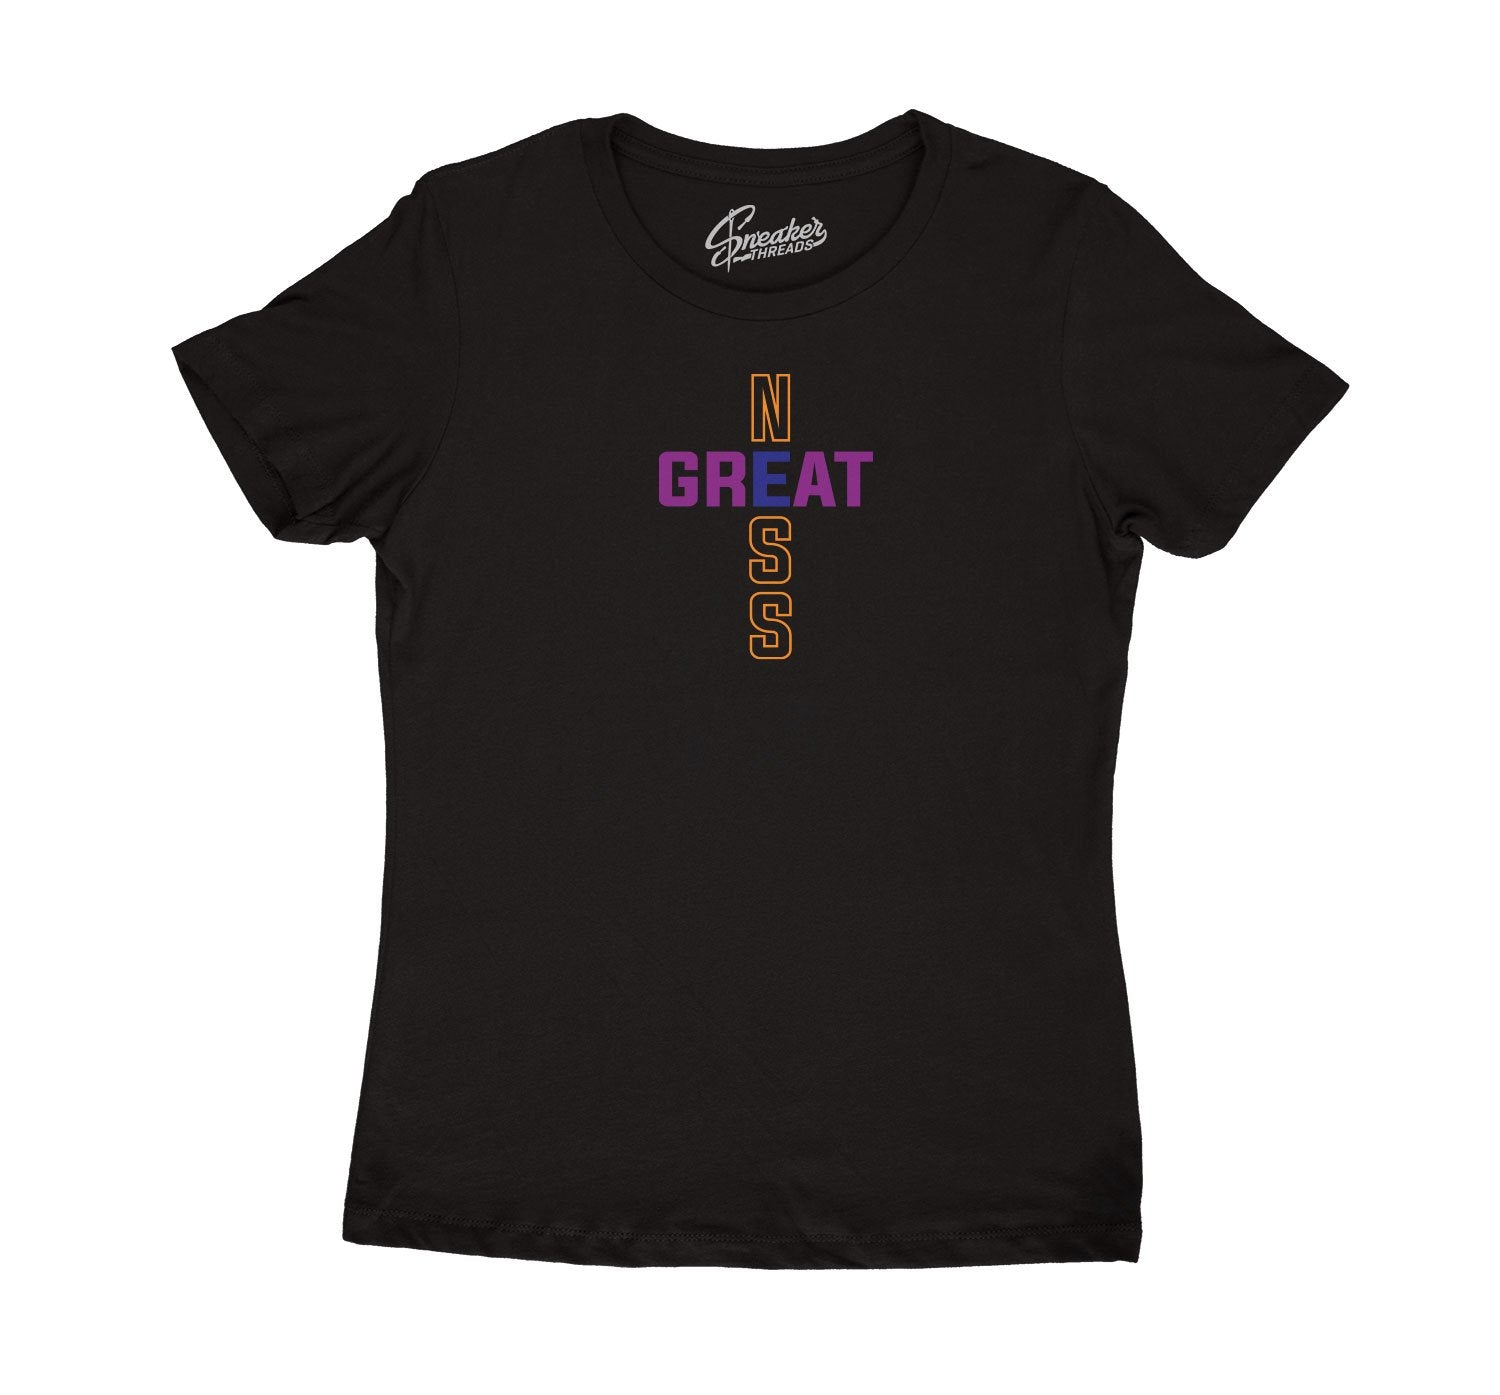 Women shirt to match Jordan 4 Rush Violet sneaker